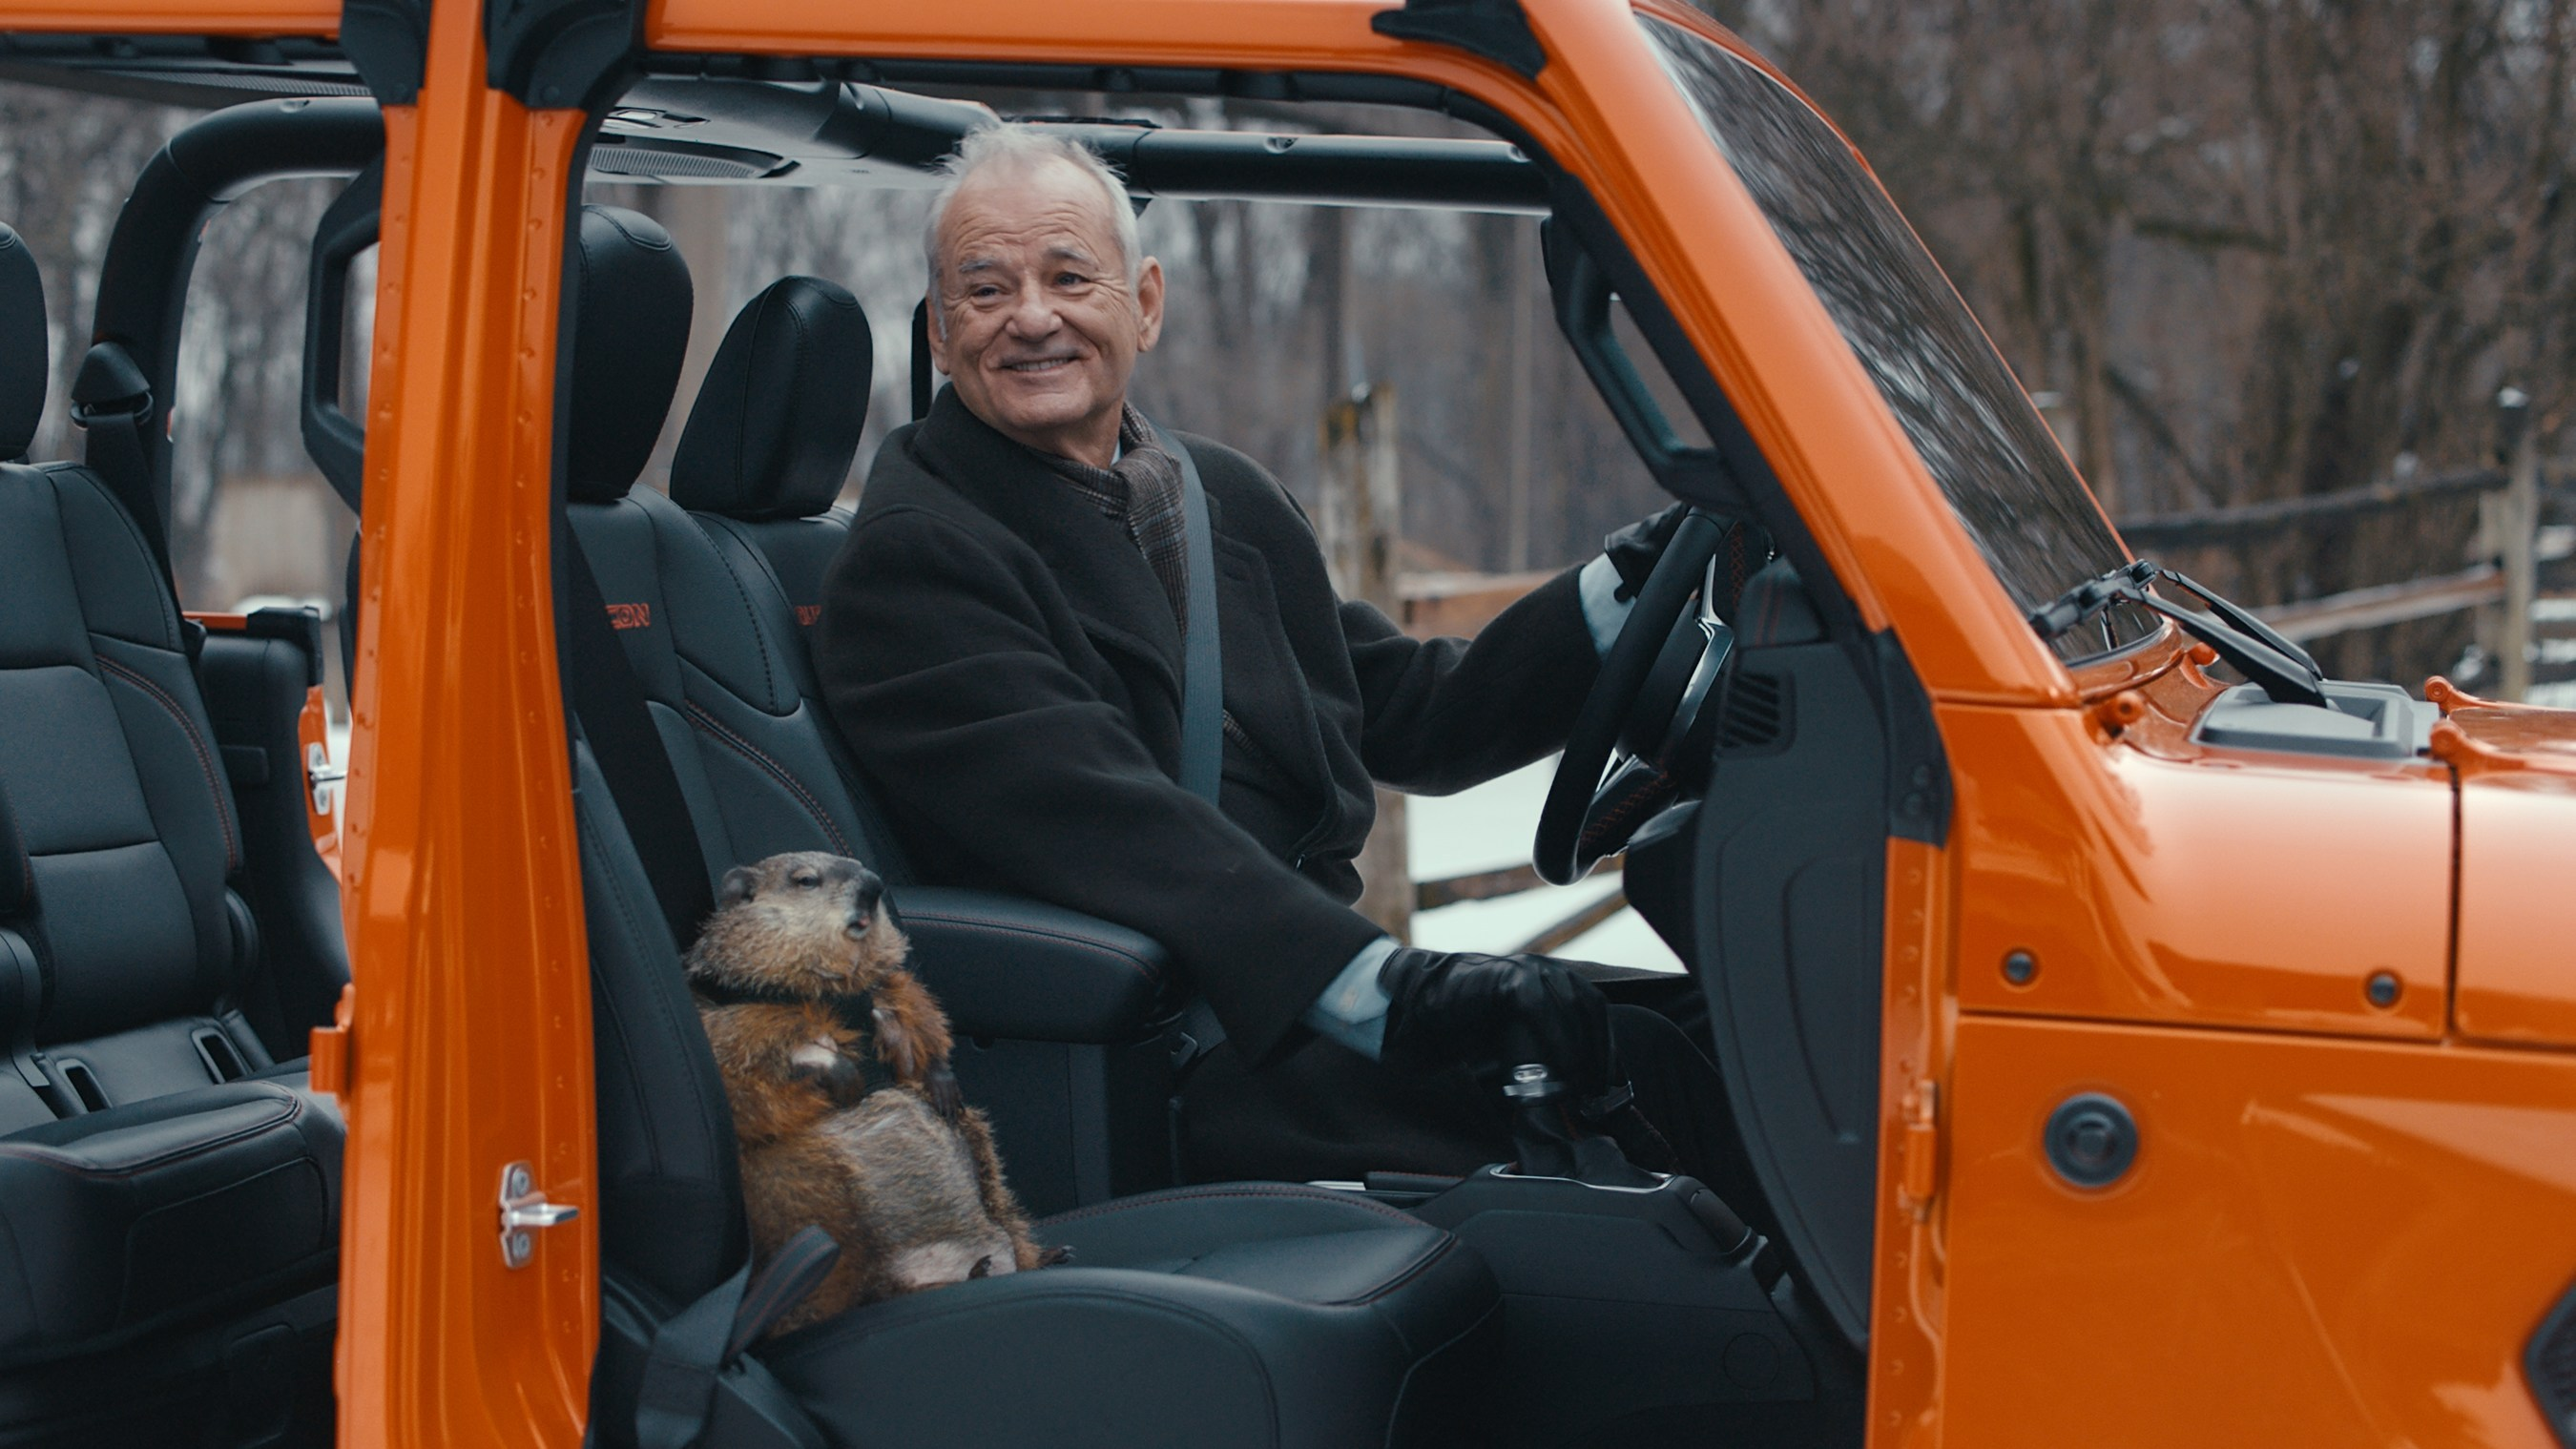 It's 'Groundhog Day' (again) in Bill Murray Super Bowl commercial for Jeep